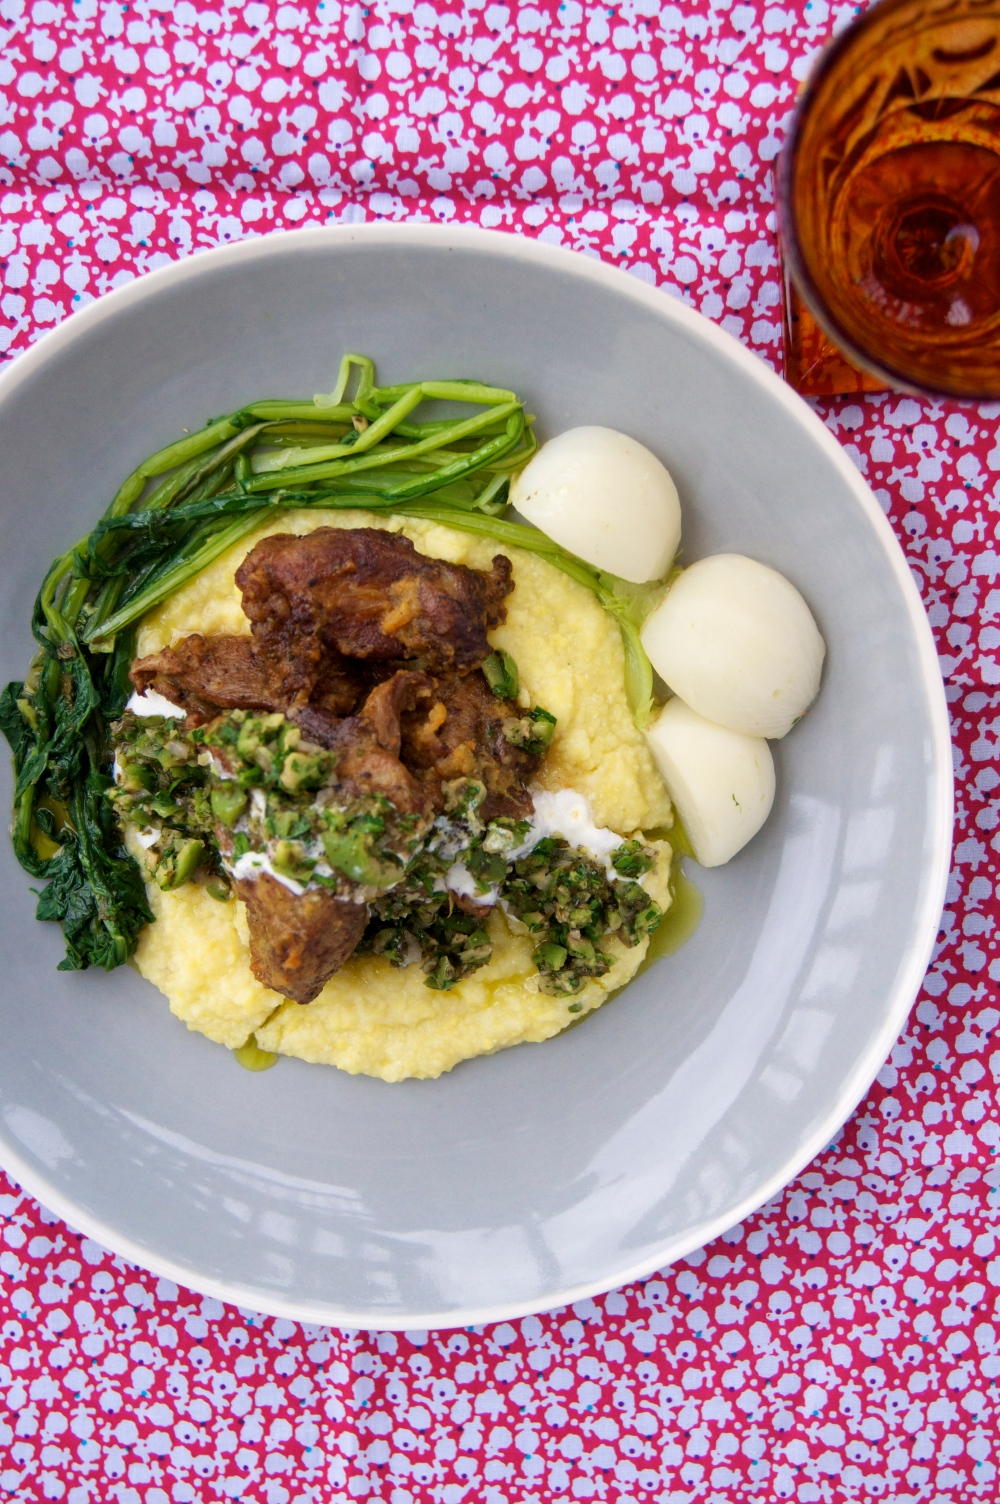 Braised Pork with Polenta, Turnips, and Green Olive Relish